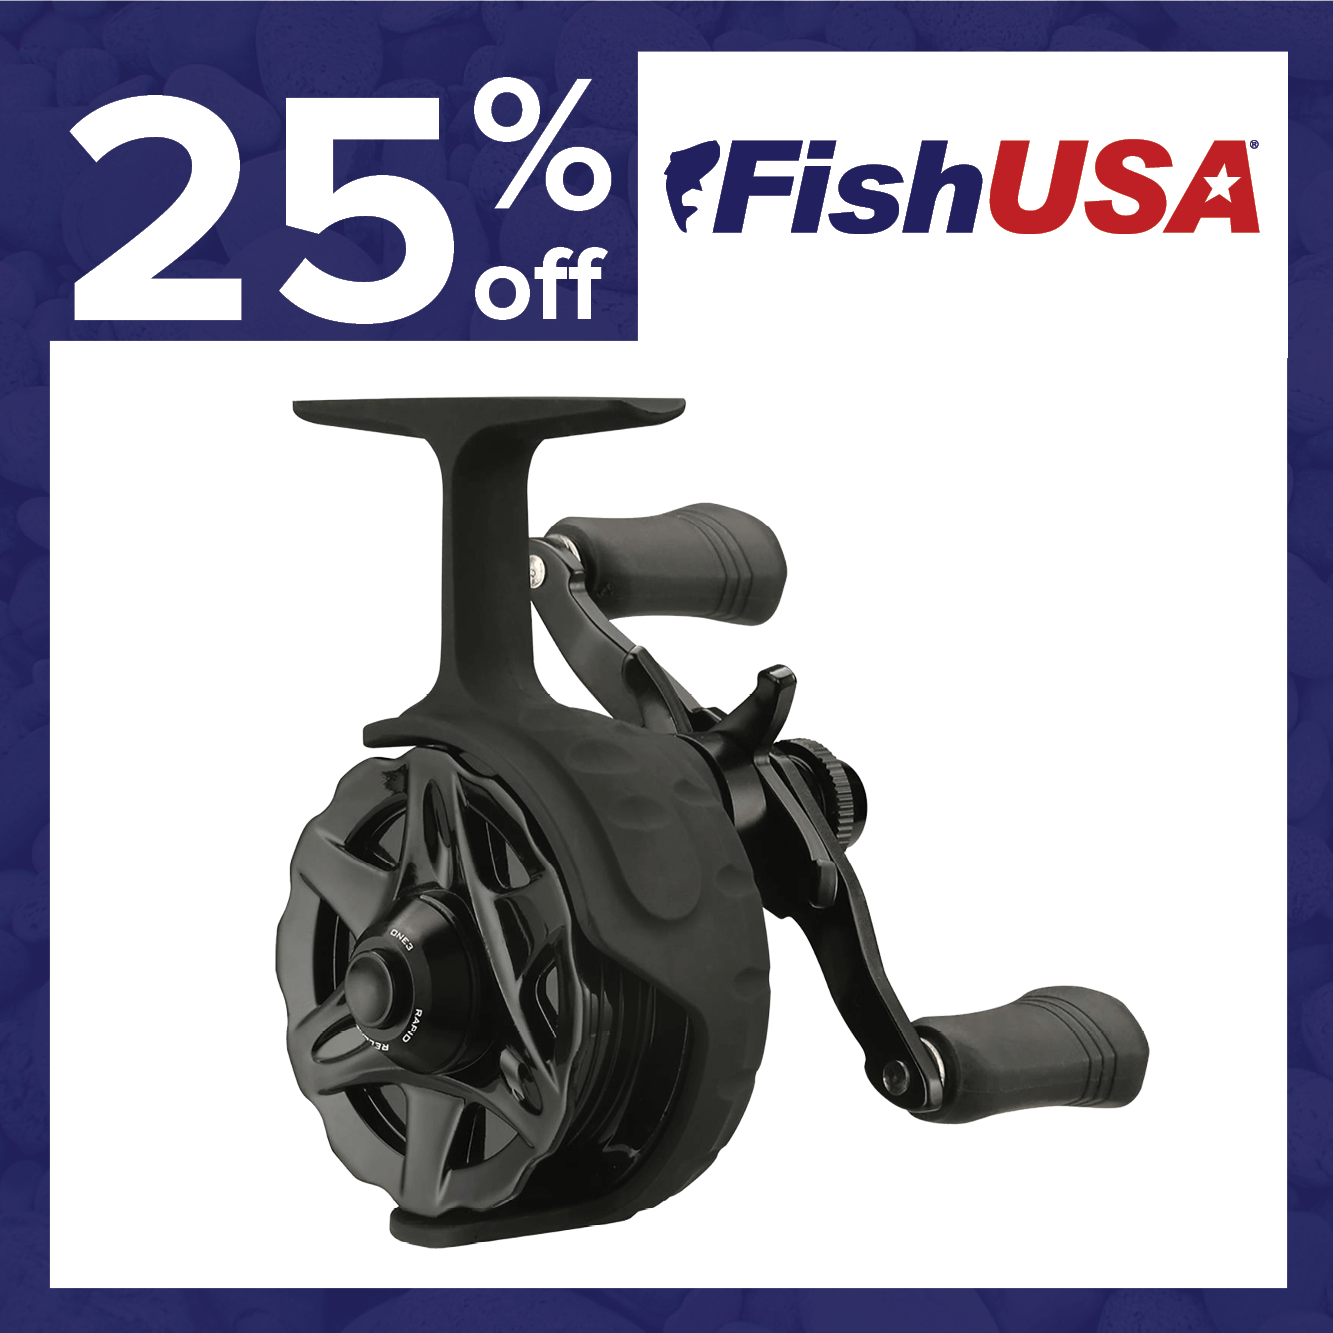 25% off the 13 Fishing Descent Inline Ice Reel